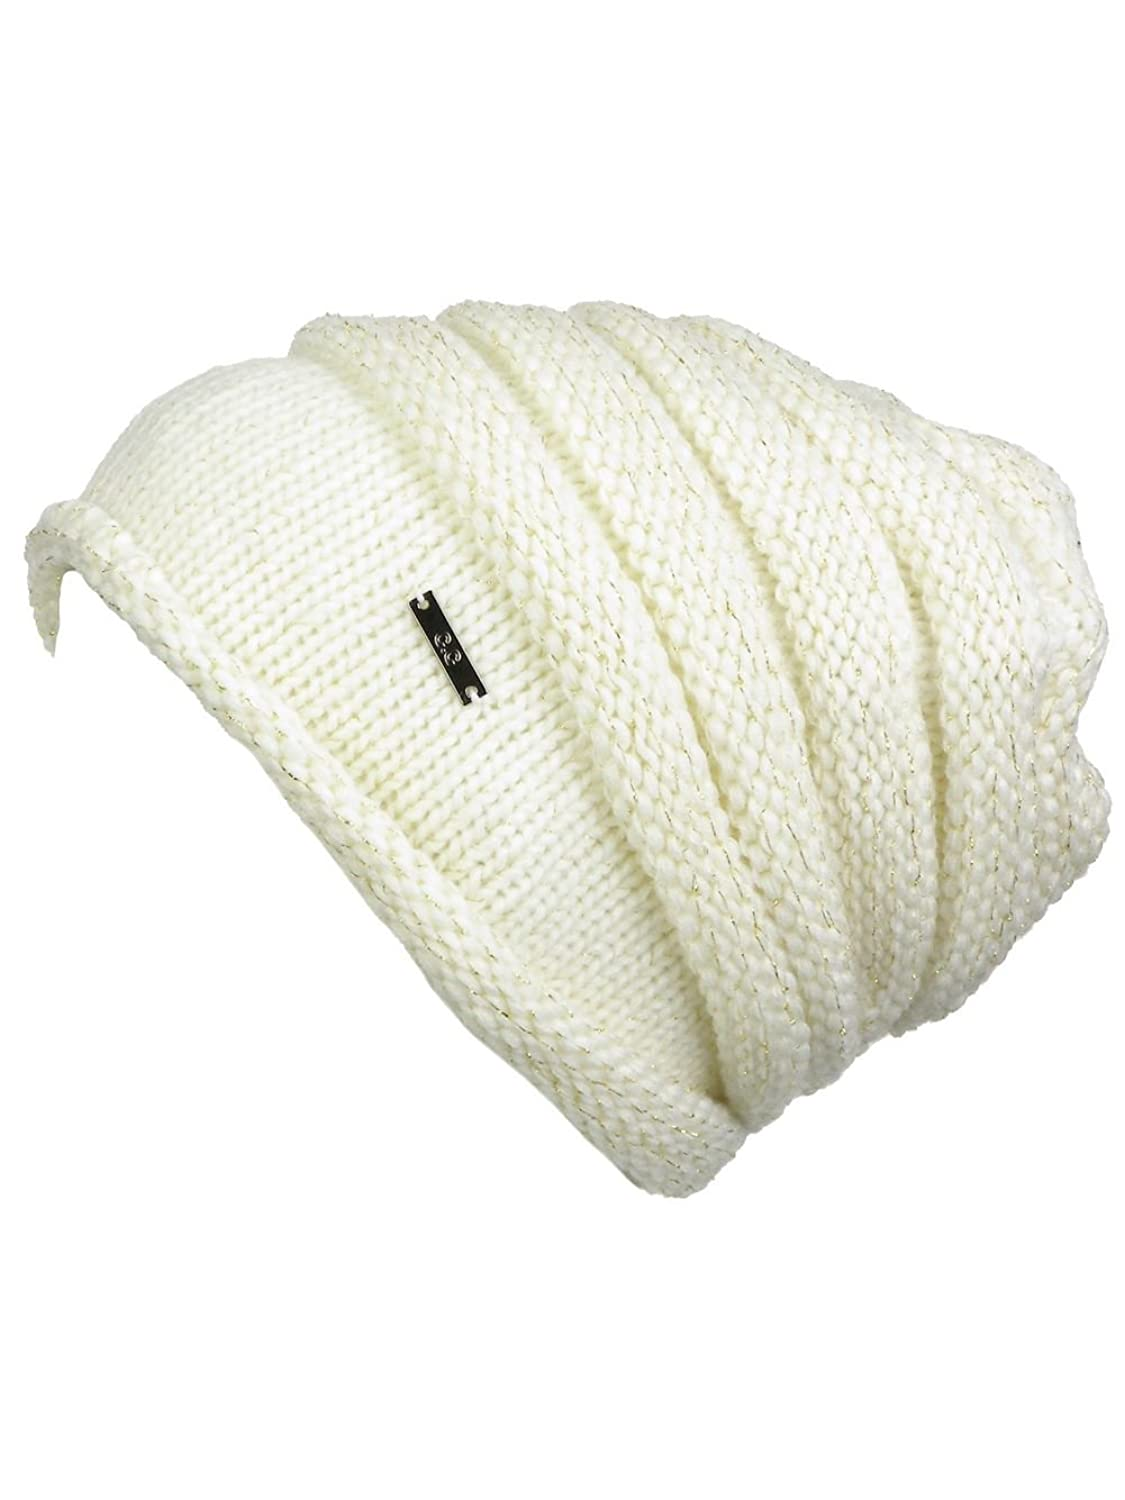 Women's Winter Ribbed Knit Beanie Skull Hat Cap with Metallic Gold Tone Threads